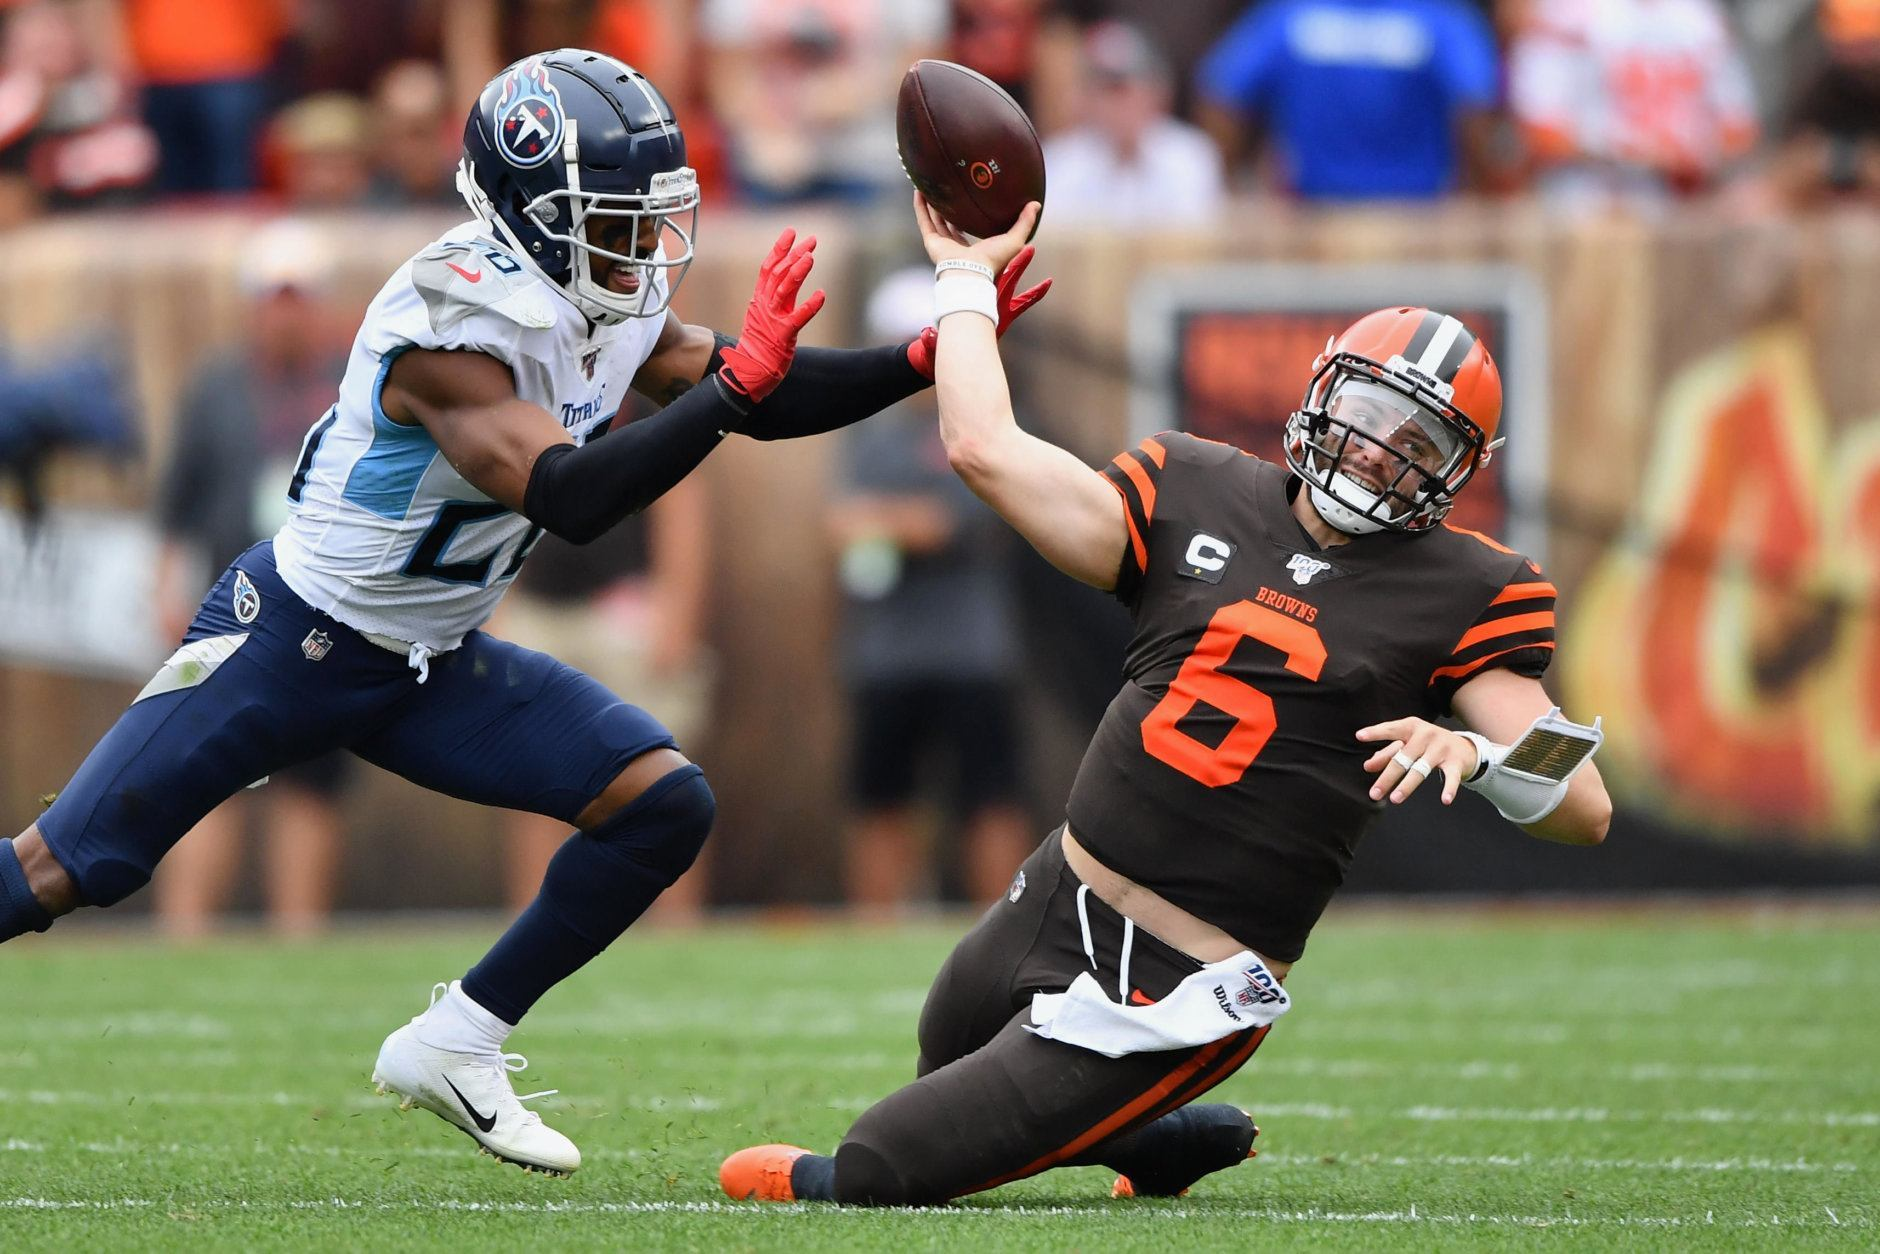 "<p><b><i>Titans 43</i></b><br /> <b><i>Browns 13</i></b></p> <p>Even with their much-improved roster, Cleveland saw the Browns commit 18 penalties, Baker Mayfield throw as many fourth quarter completions as interceptions (3) en route to an NFL-record 15 straight losses in season openers. The Browns aren&#8217;t as bad as <a href=""https://ftw.usatoday.com/2019/09/nfl-cleveland-browns-titans-delanie-walker-dennis-green-take"">Delanie Walker would lead you to believe</a>, but perhaps they&#8217;re not nearly as good as their considerable hype.</p>"